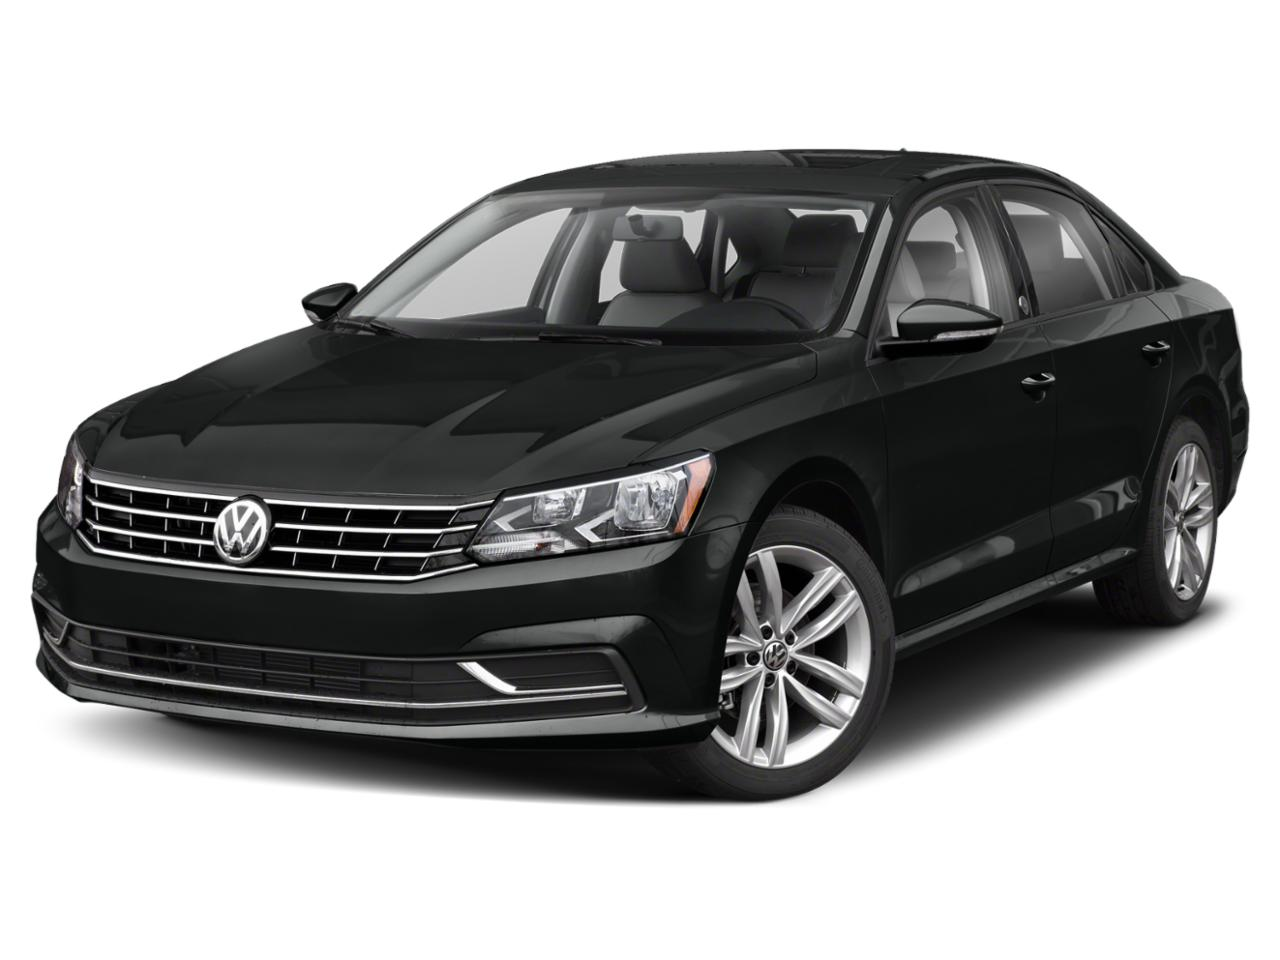 2019 Volkswagen Passat Vehicle Photo in San Antonio, TX 78257